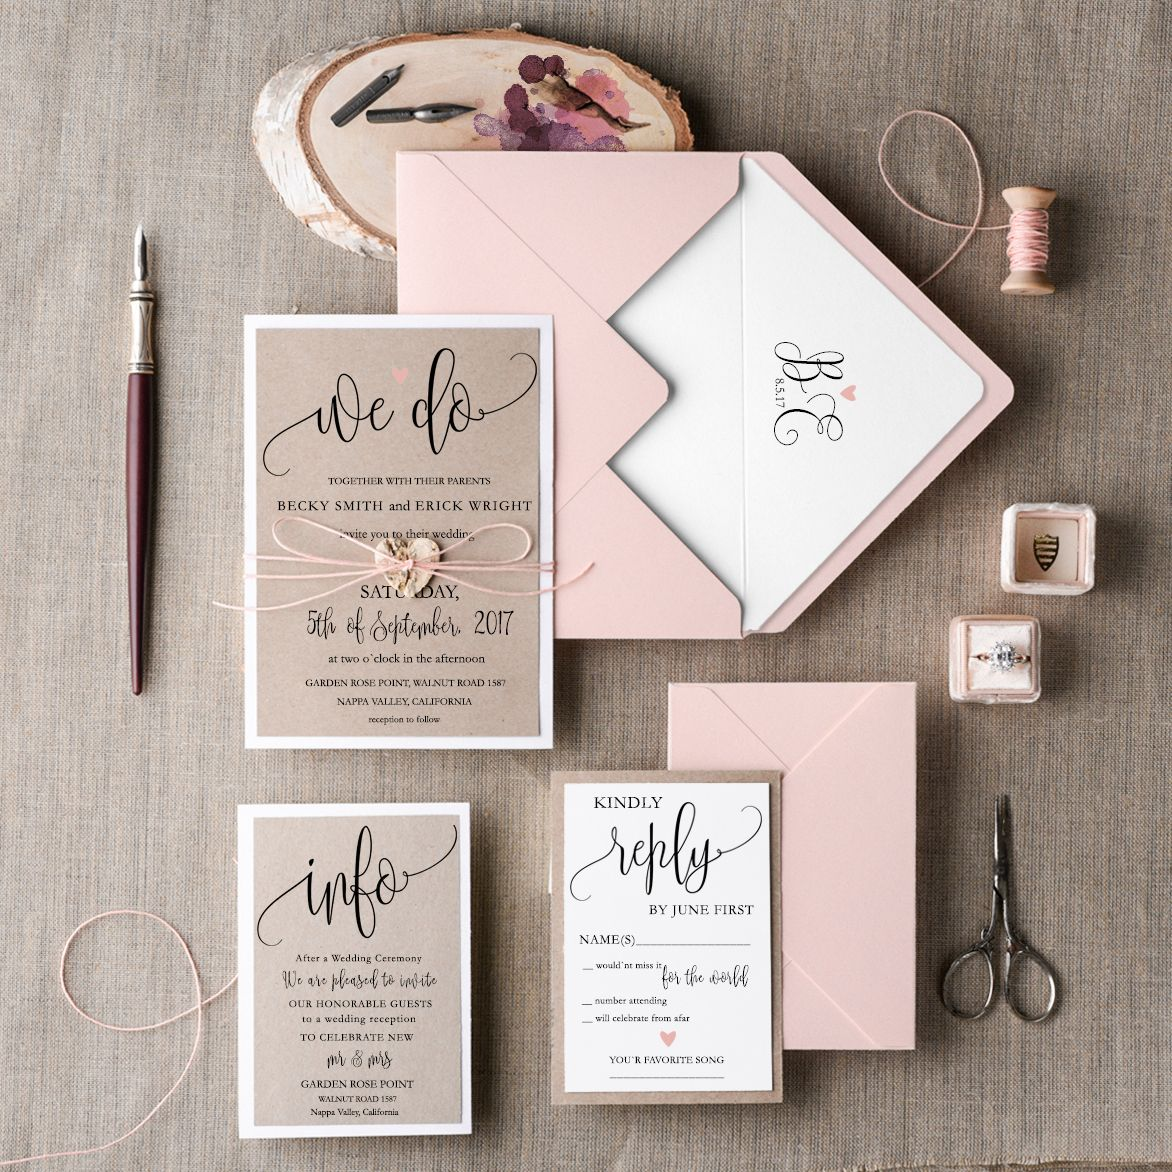 Pin By Lauren Brumbach On Invitations Wedding Invitation Kits Rustic Wedding Invitation Set Wedding Invitations Rustic